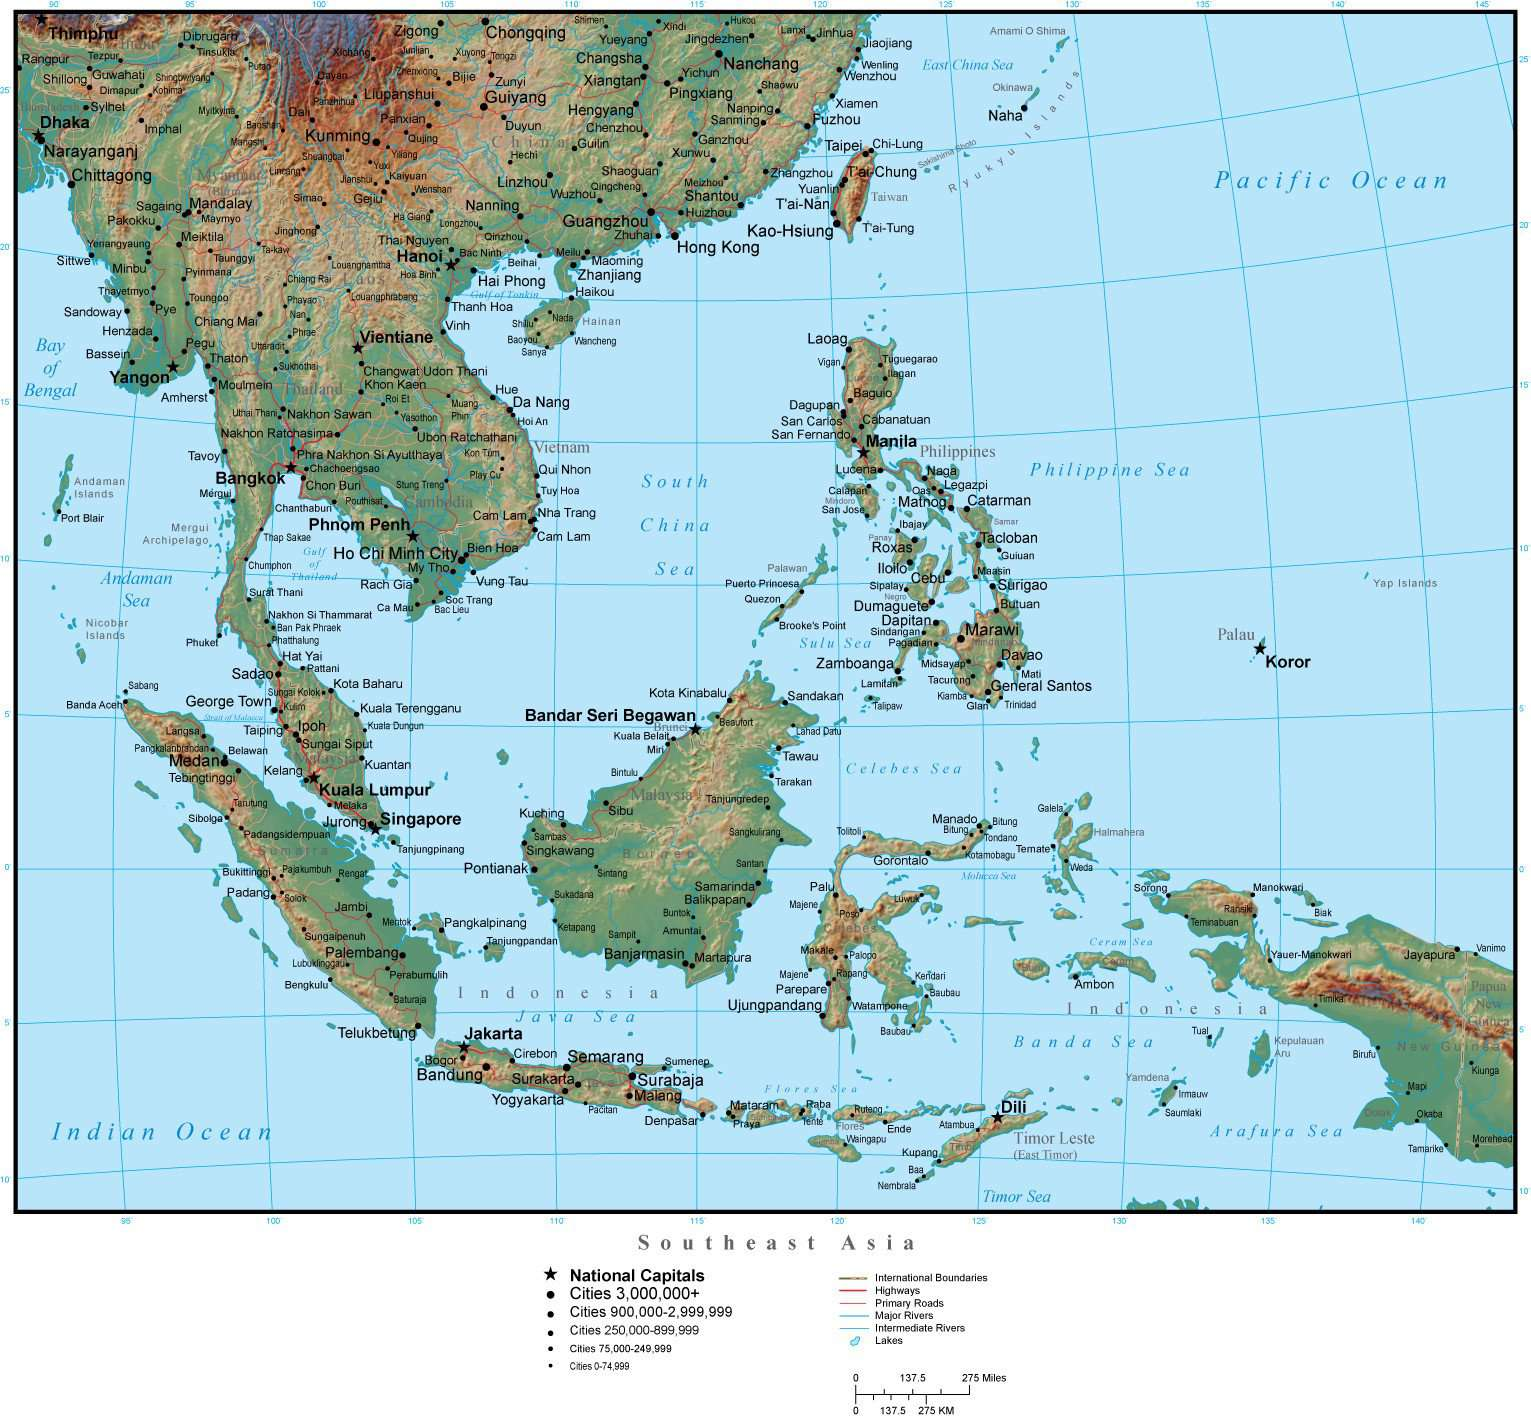 Countries Of Southeast Asia Map.Southeast Asia Map Plus Terrain With Countries Capitals Cities Roads And Water Features